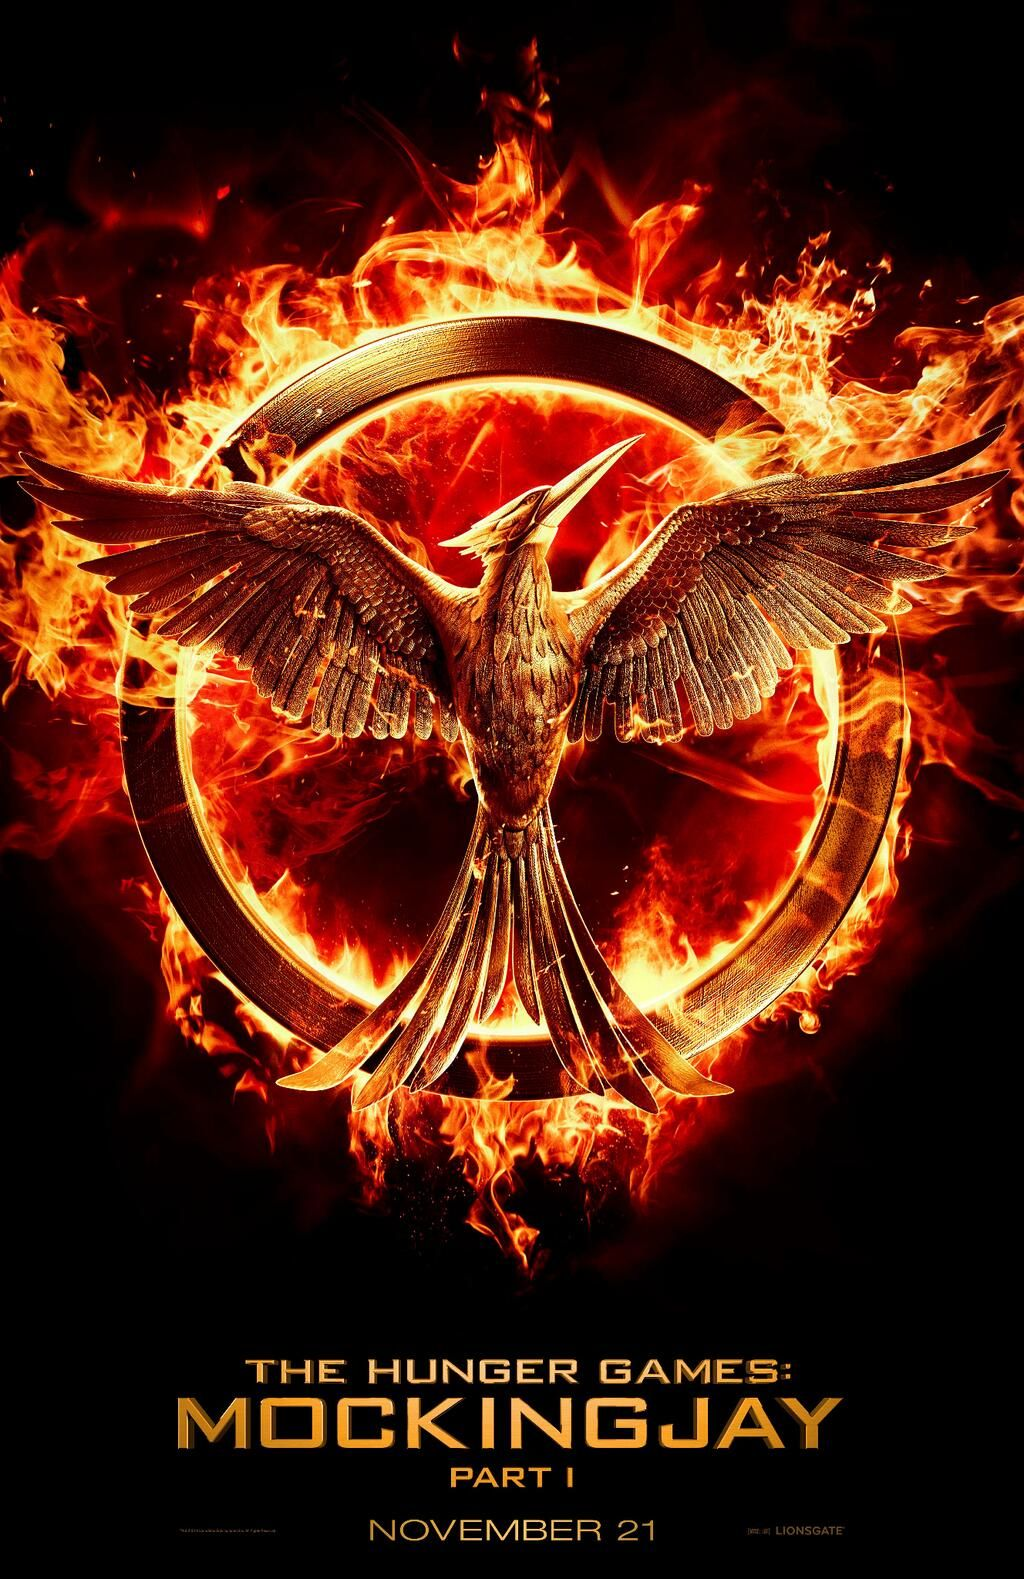 The Hunger Games: Mockingjay - Part 1 Trailer to Debut on